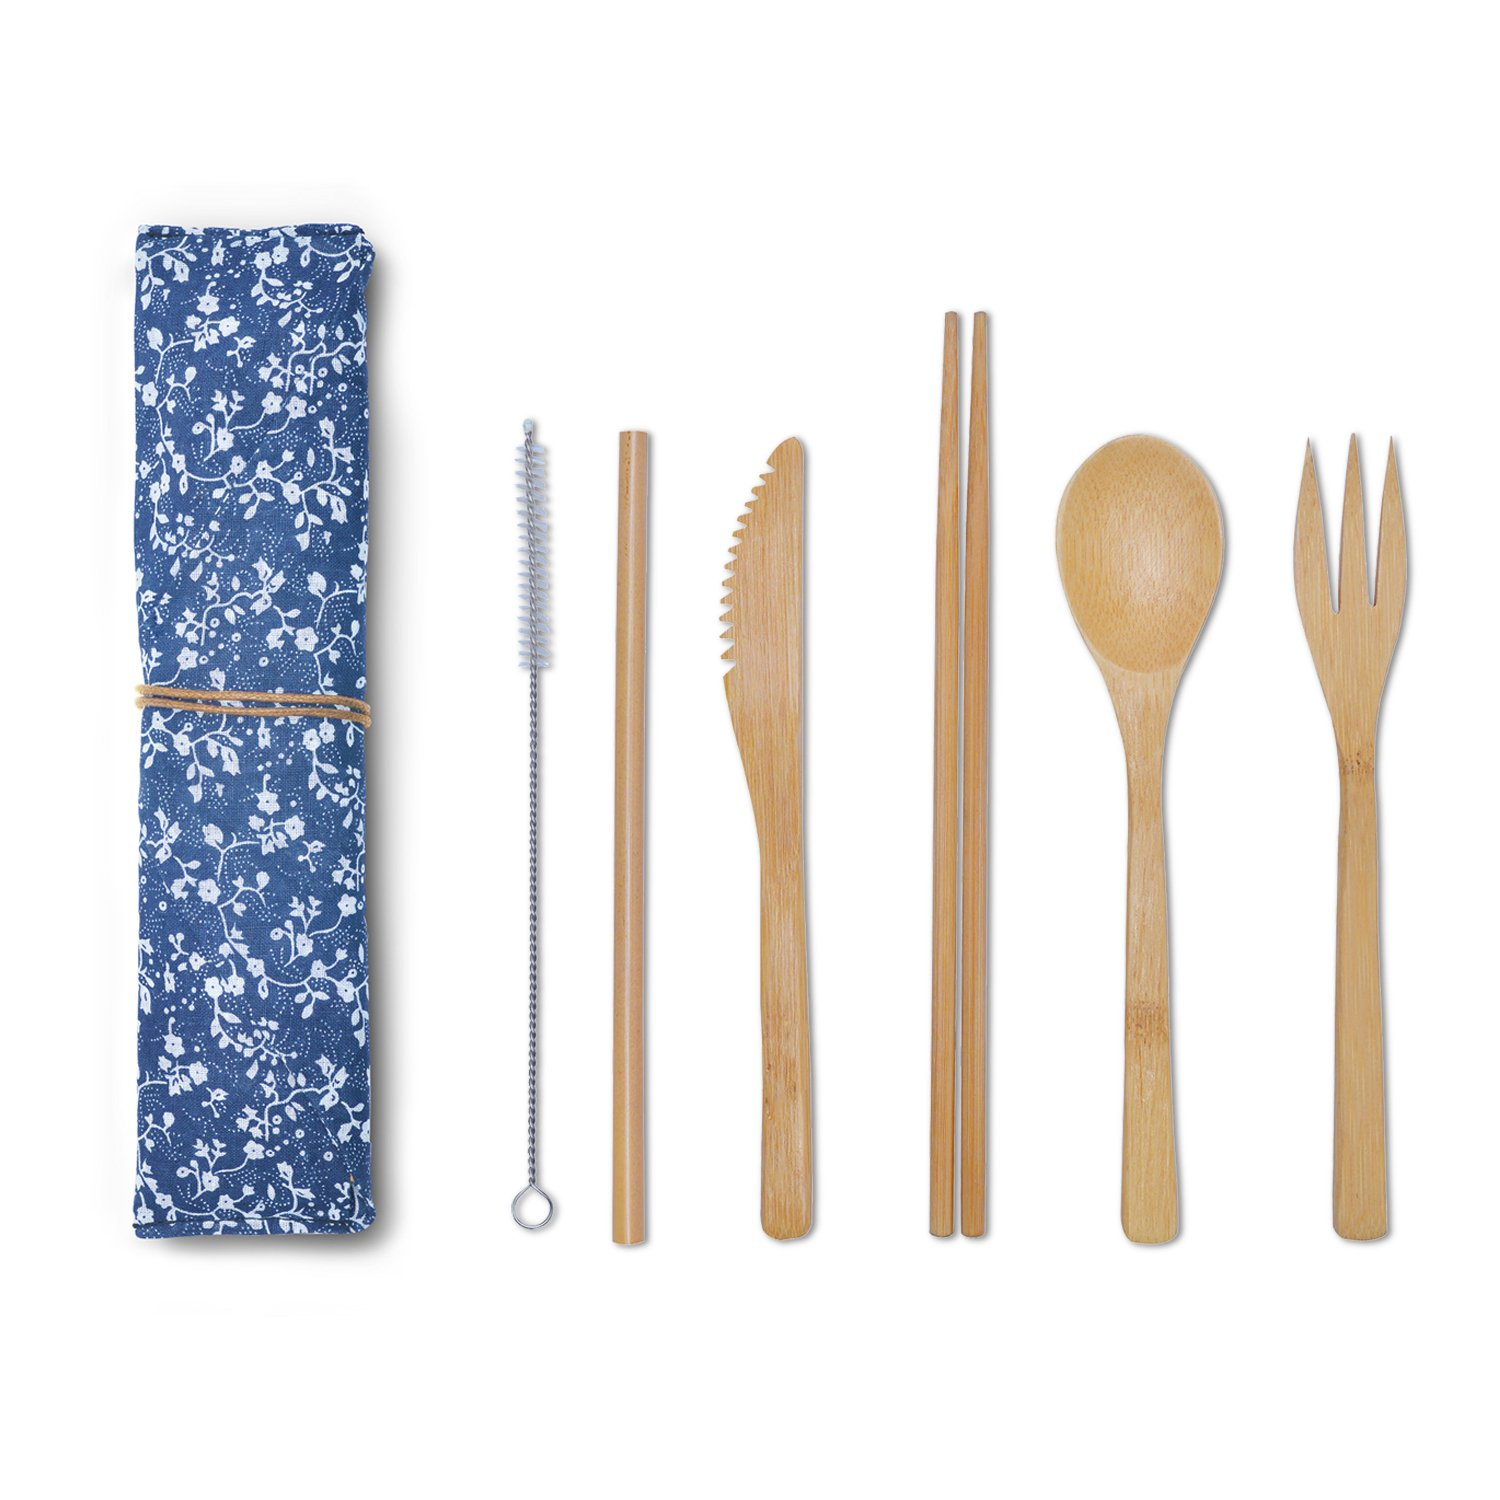 Bamboo Utensils, Cutlery Set (Knife, Fork, Spoon, Chopsticks, Straw & Straw Cleaning Brush) - For Travel, Outdoor Camping, Picnics and Office Lunch Box